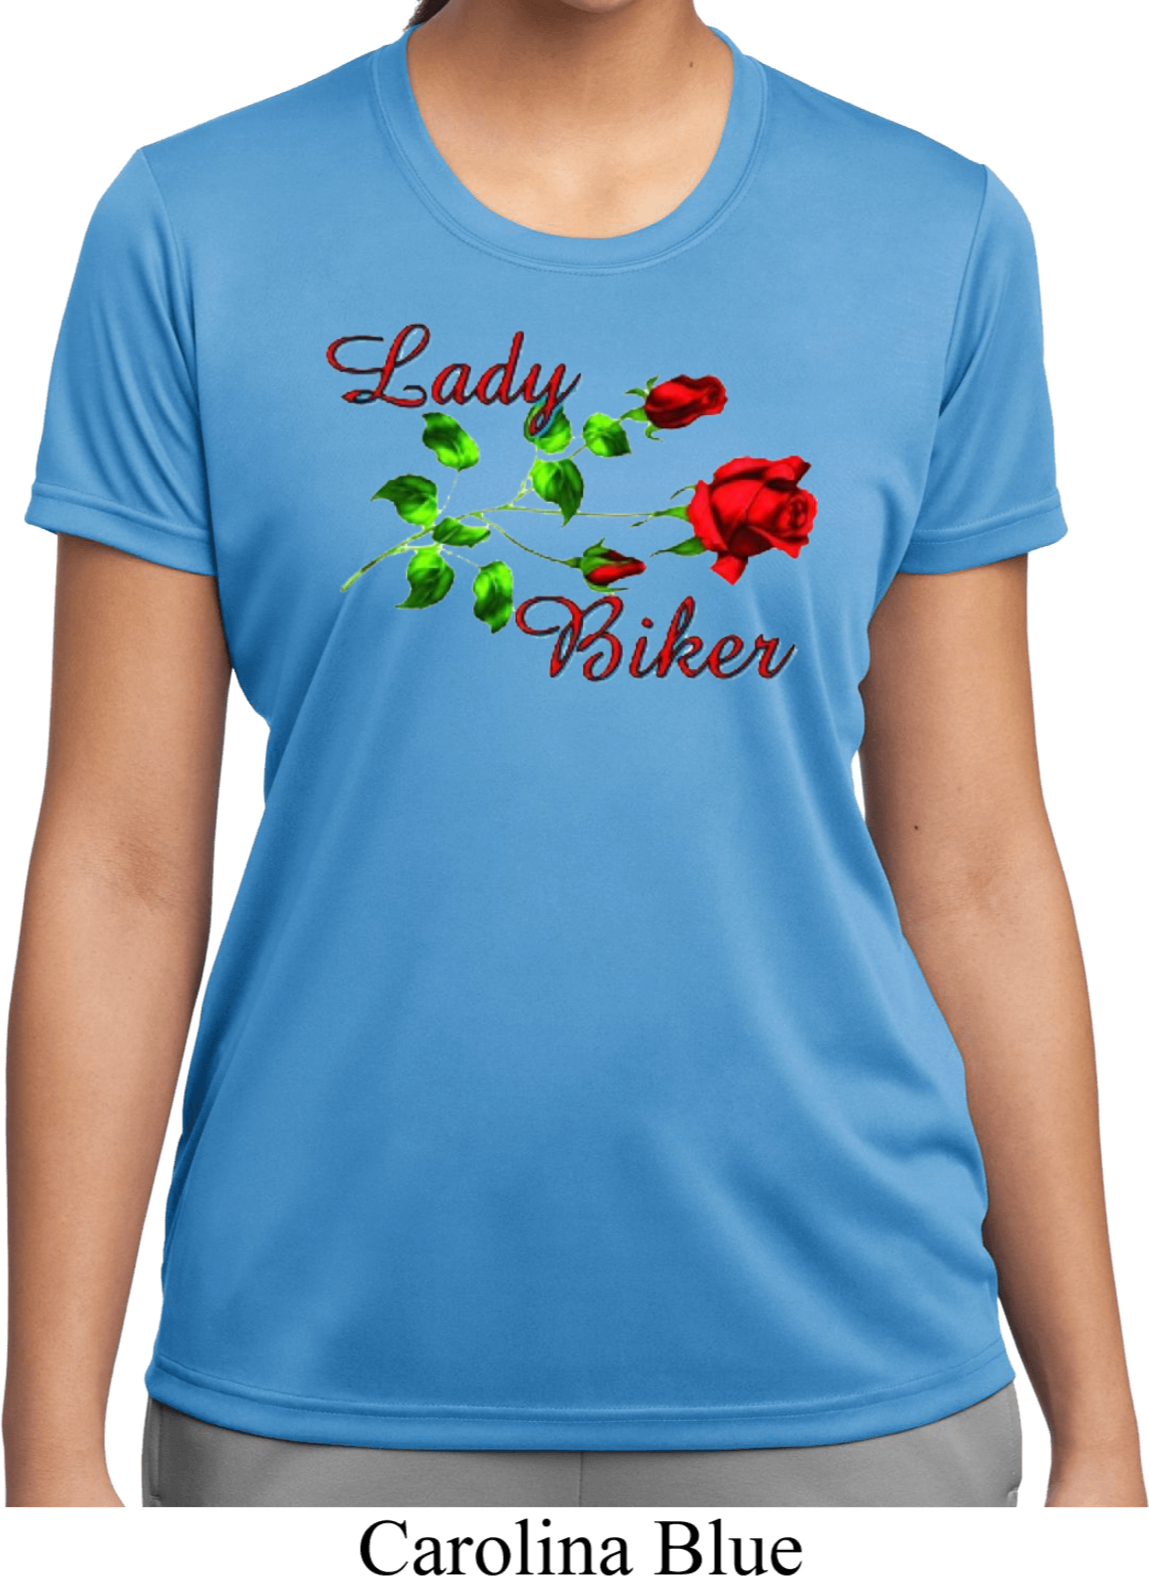 Ladies biker shirt lady biker moisture wicking tee t shirt for Sweat wicking t shirts